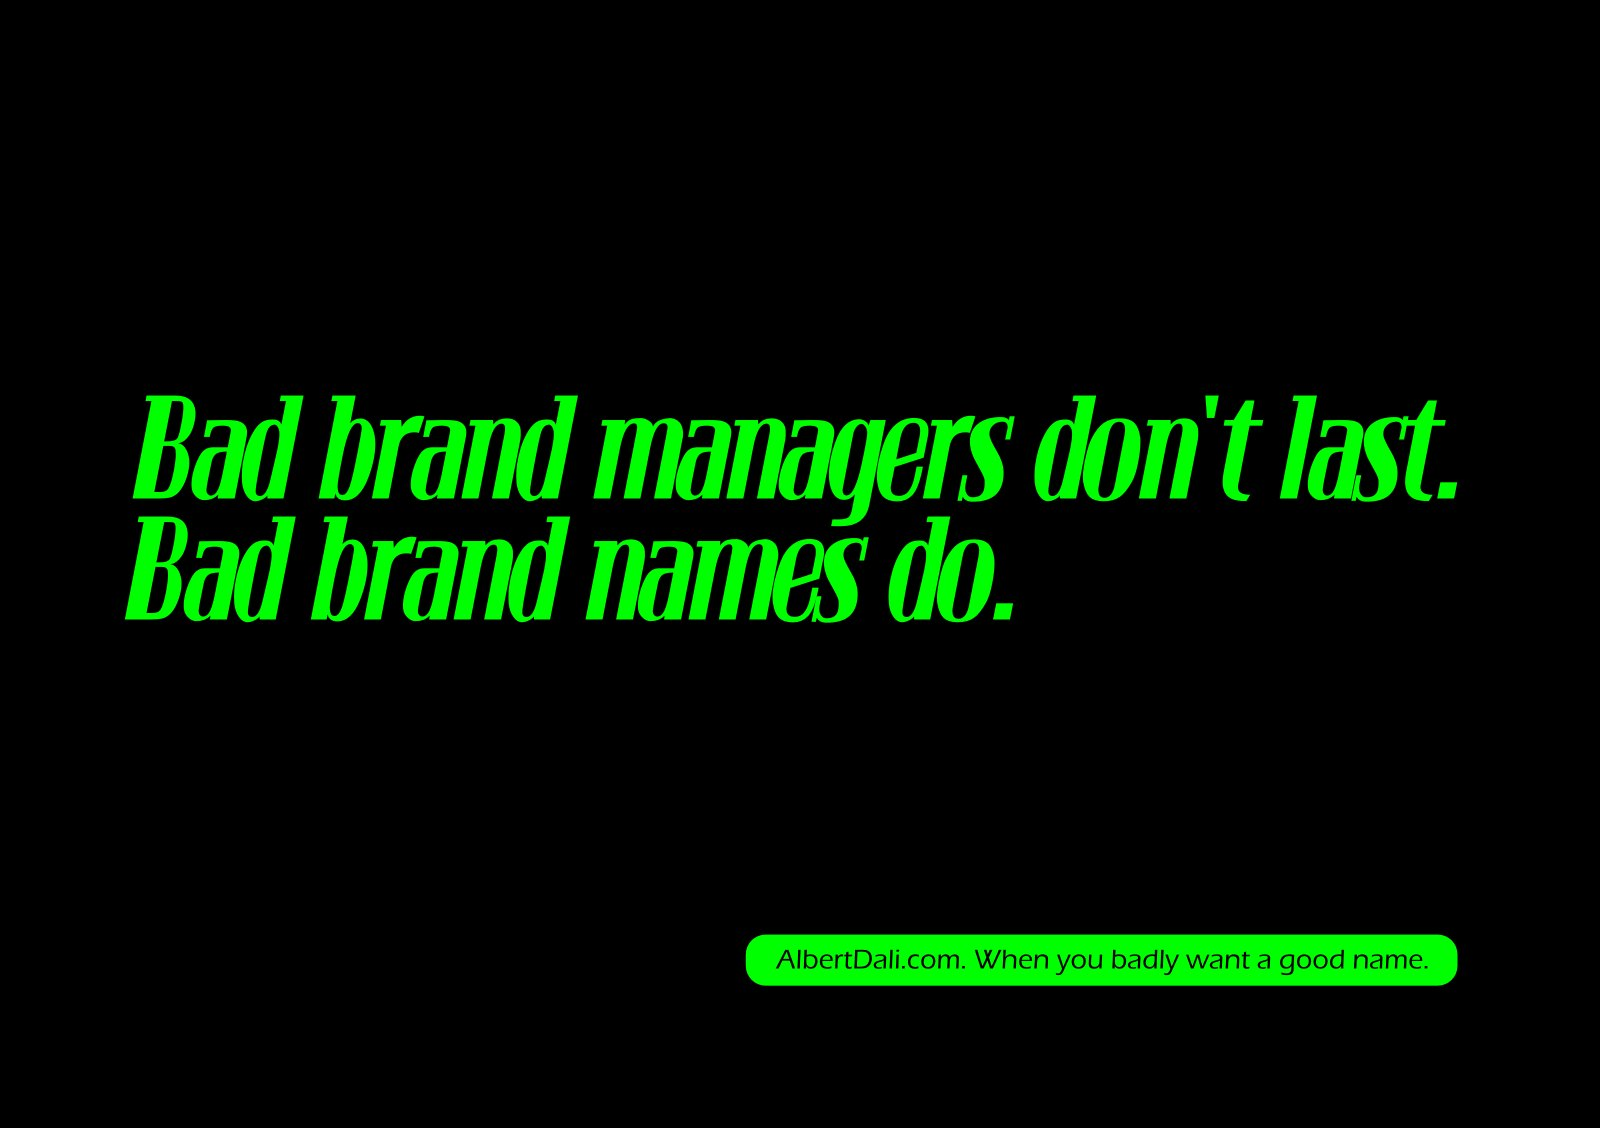 Bad brand managers